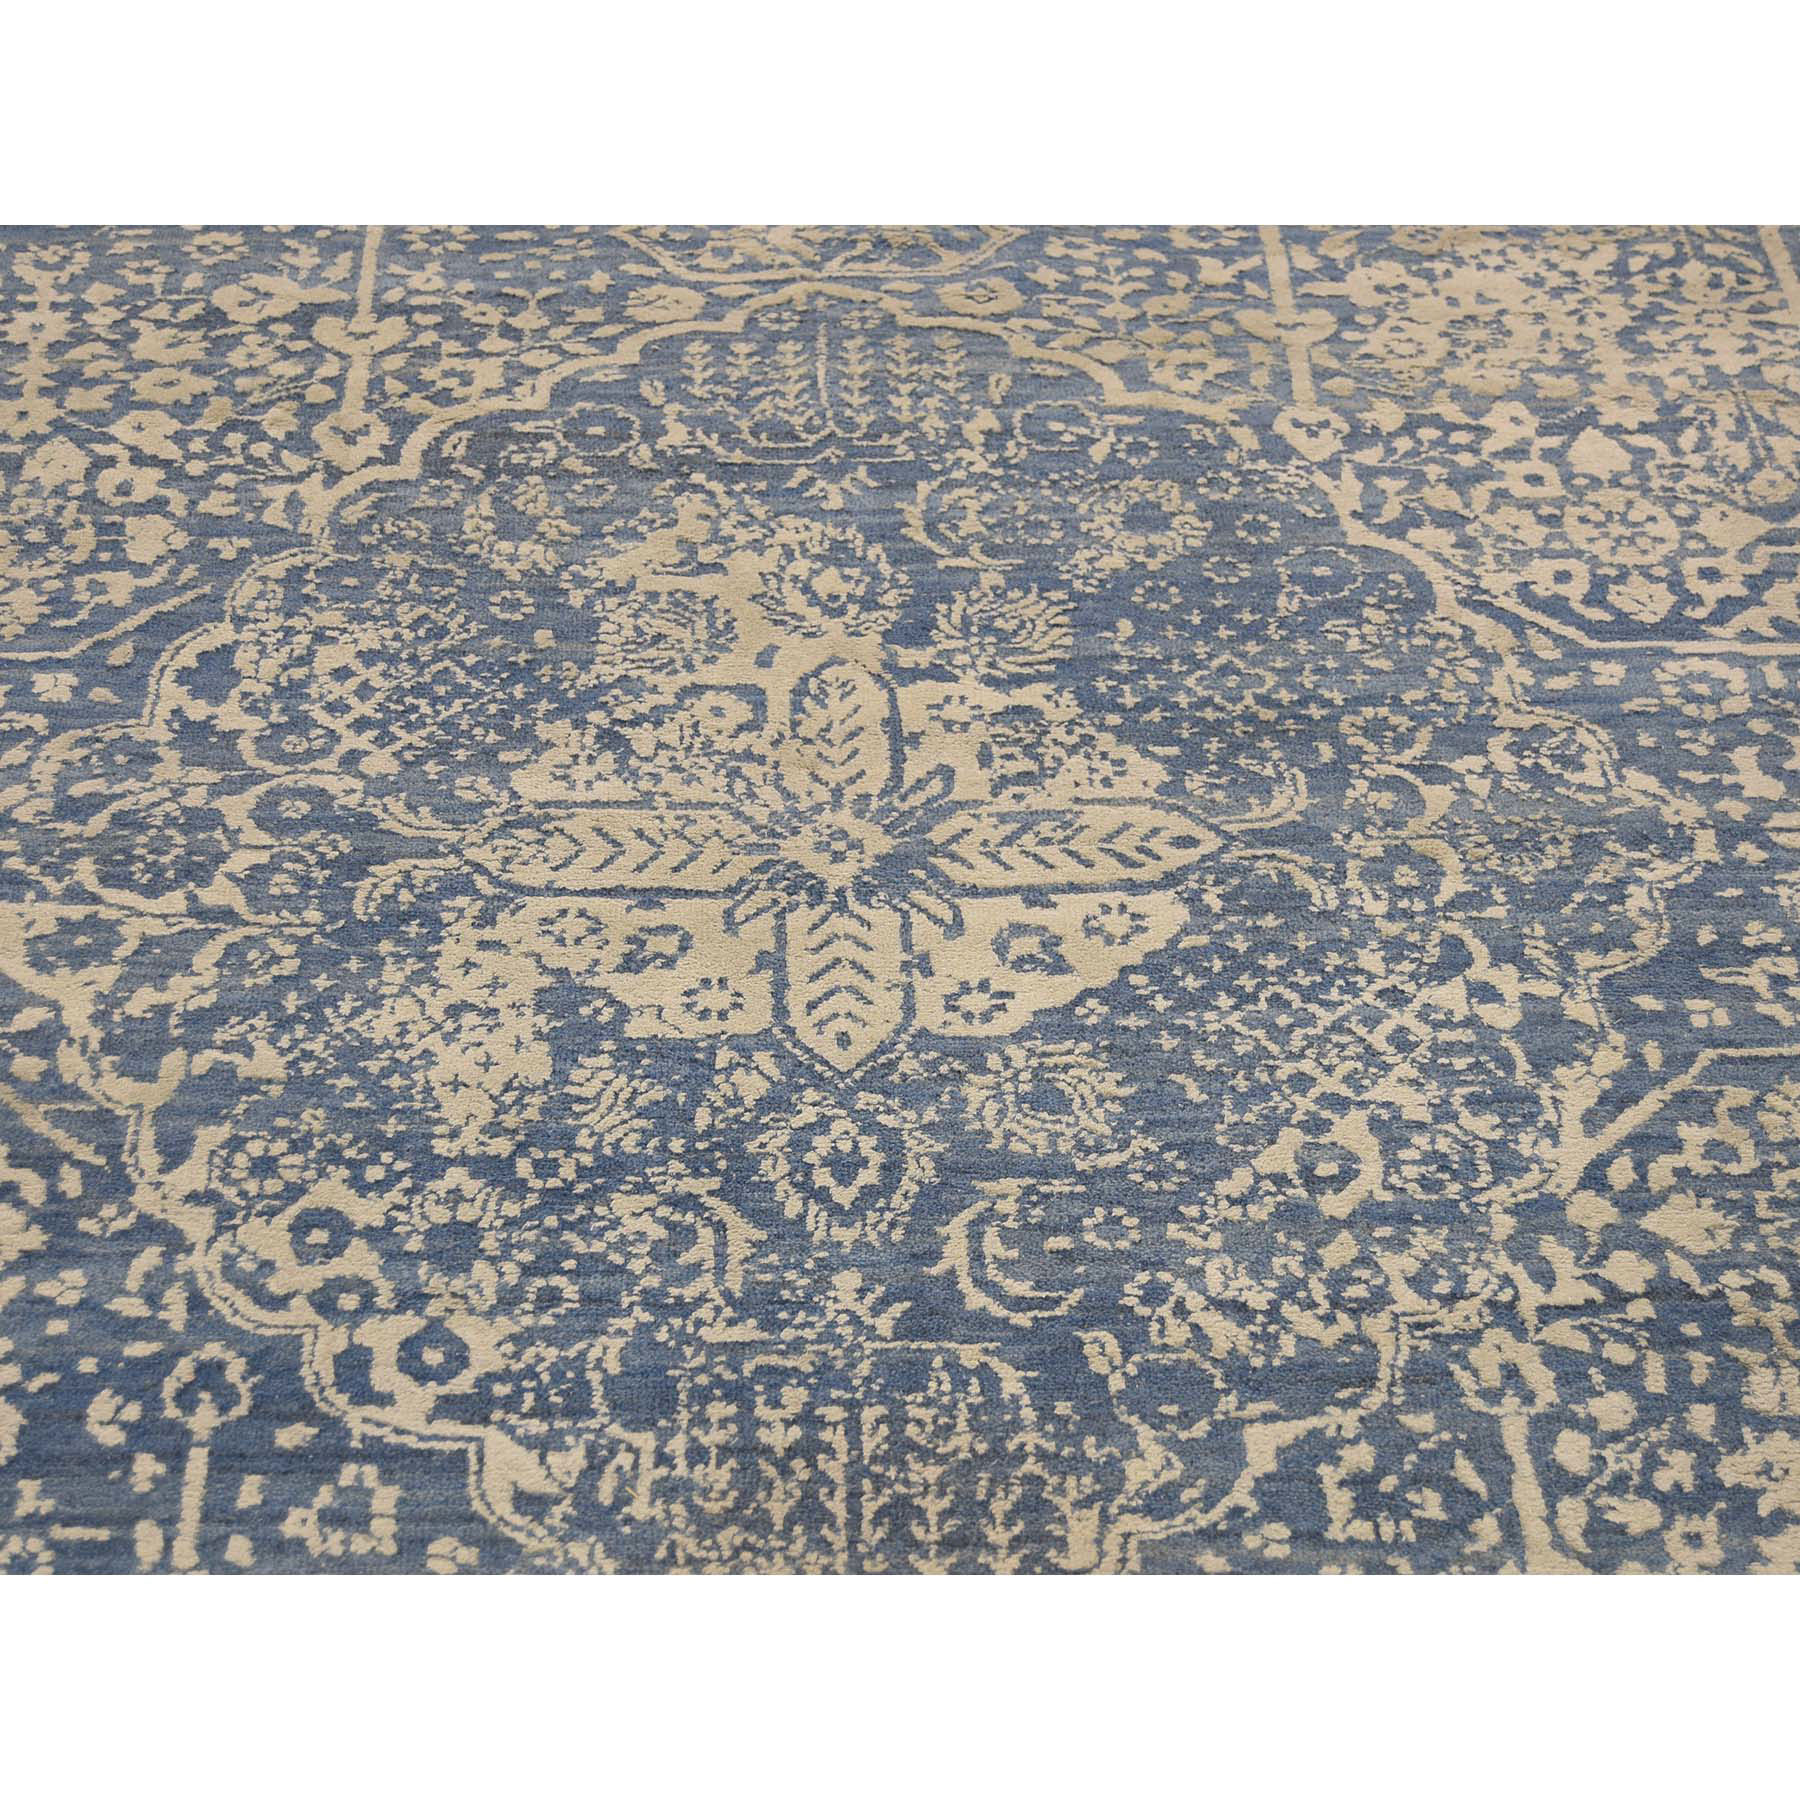 8-2--x10-1-- Wool and Silk Hand-Knotted Broken Persian Design Rug